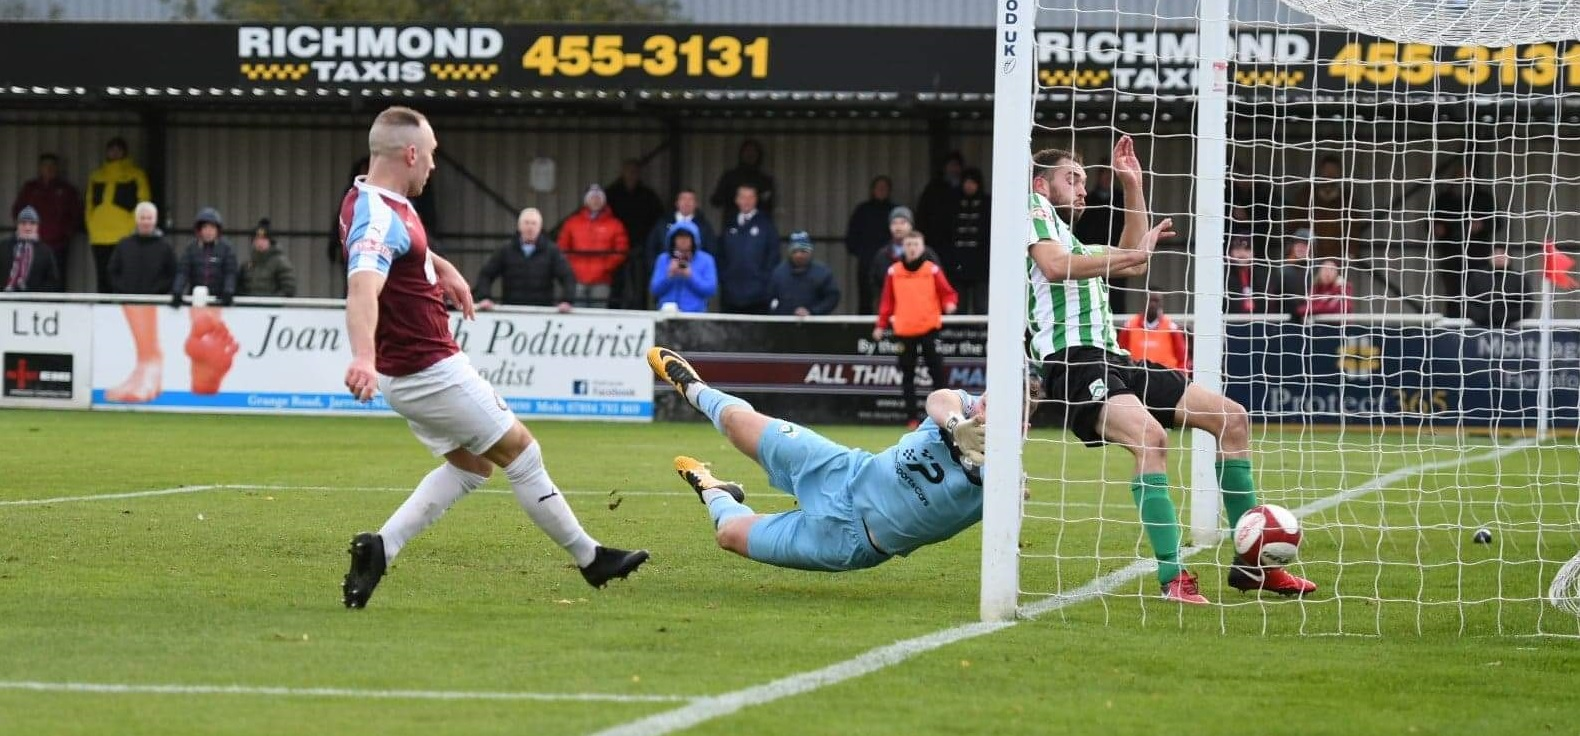 South Shields 4-0 North Ferriby United: Foley hat-trick in thumping win